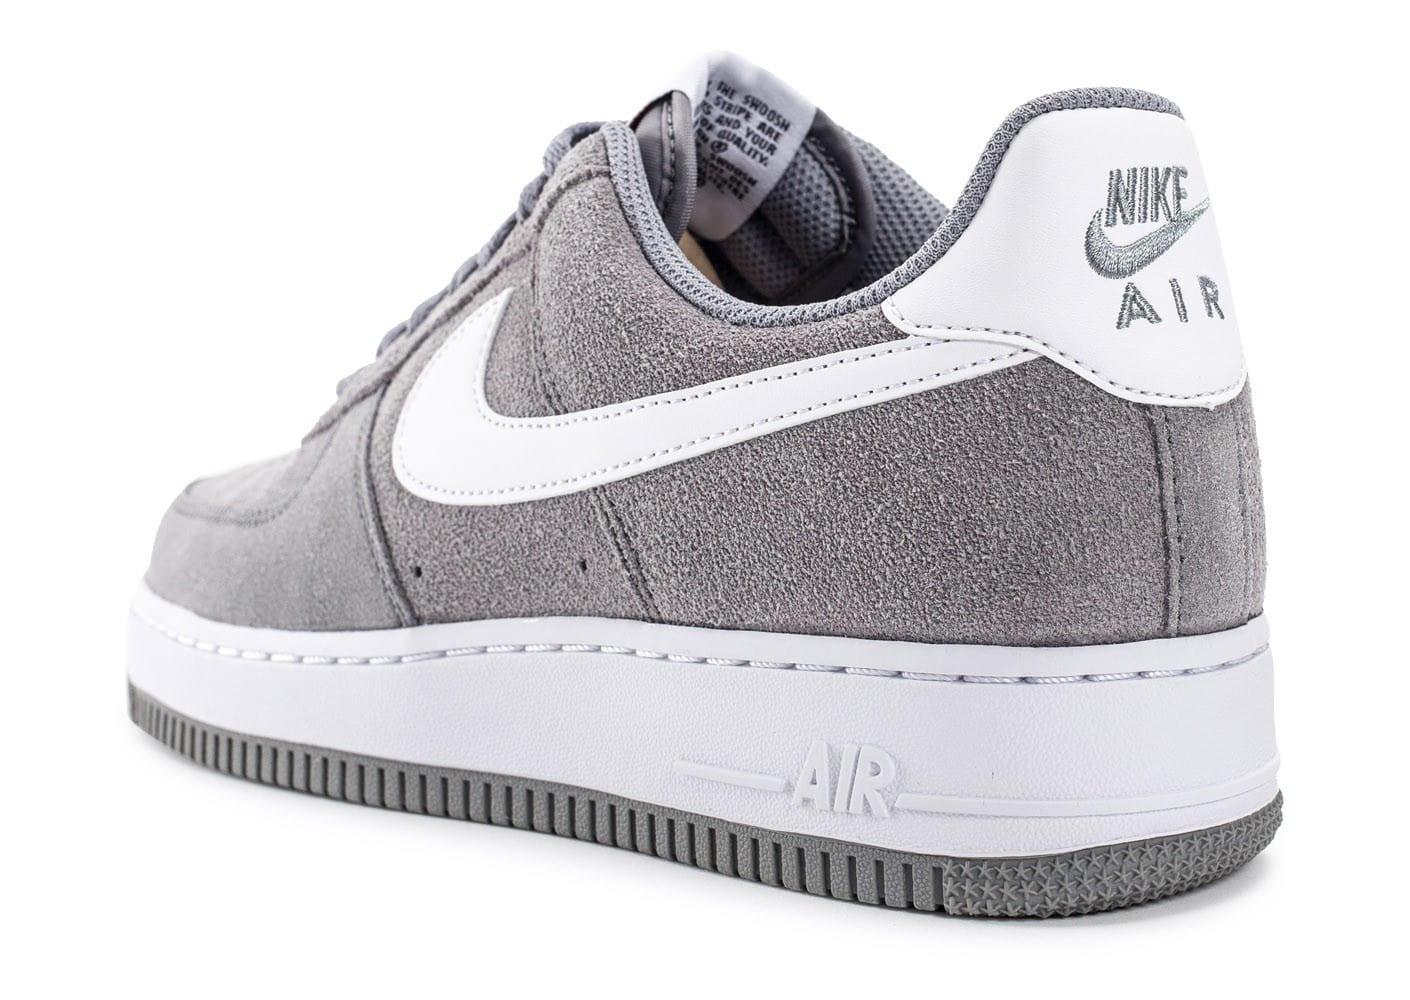 091be0f5fcf air force 1 suede grise